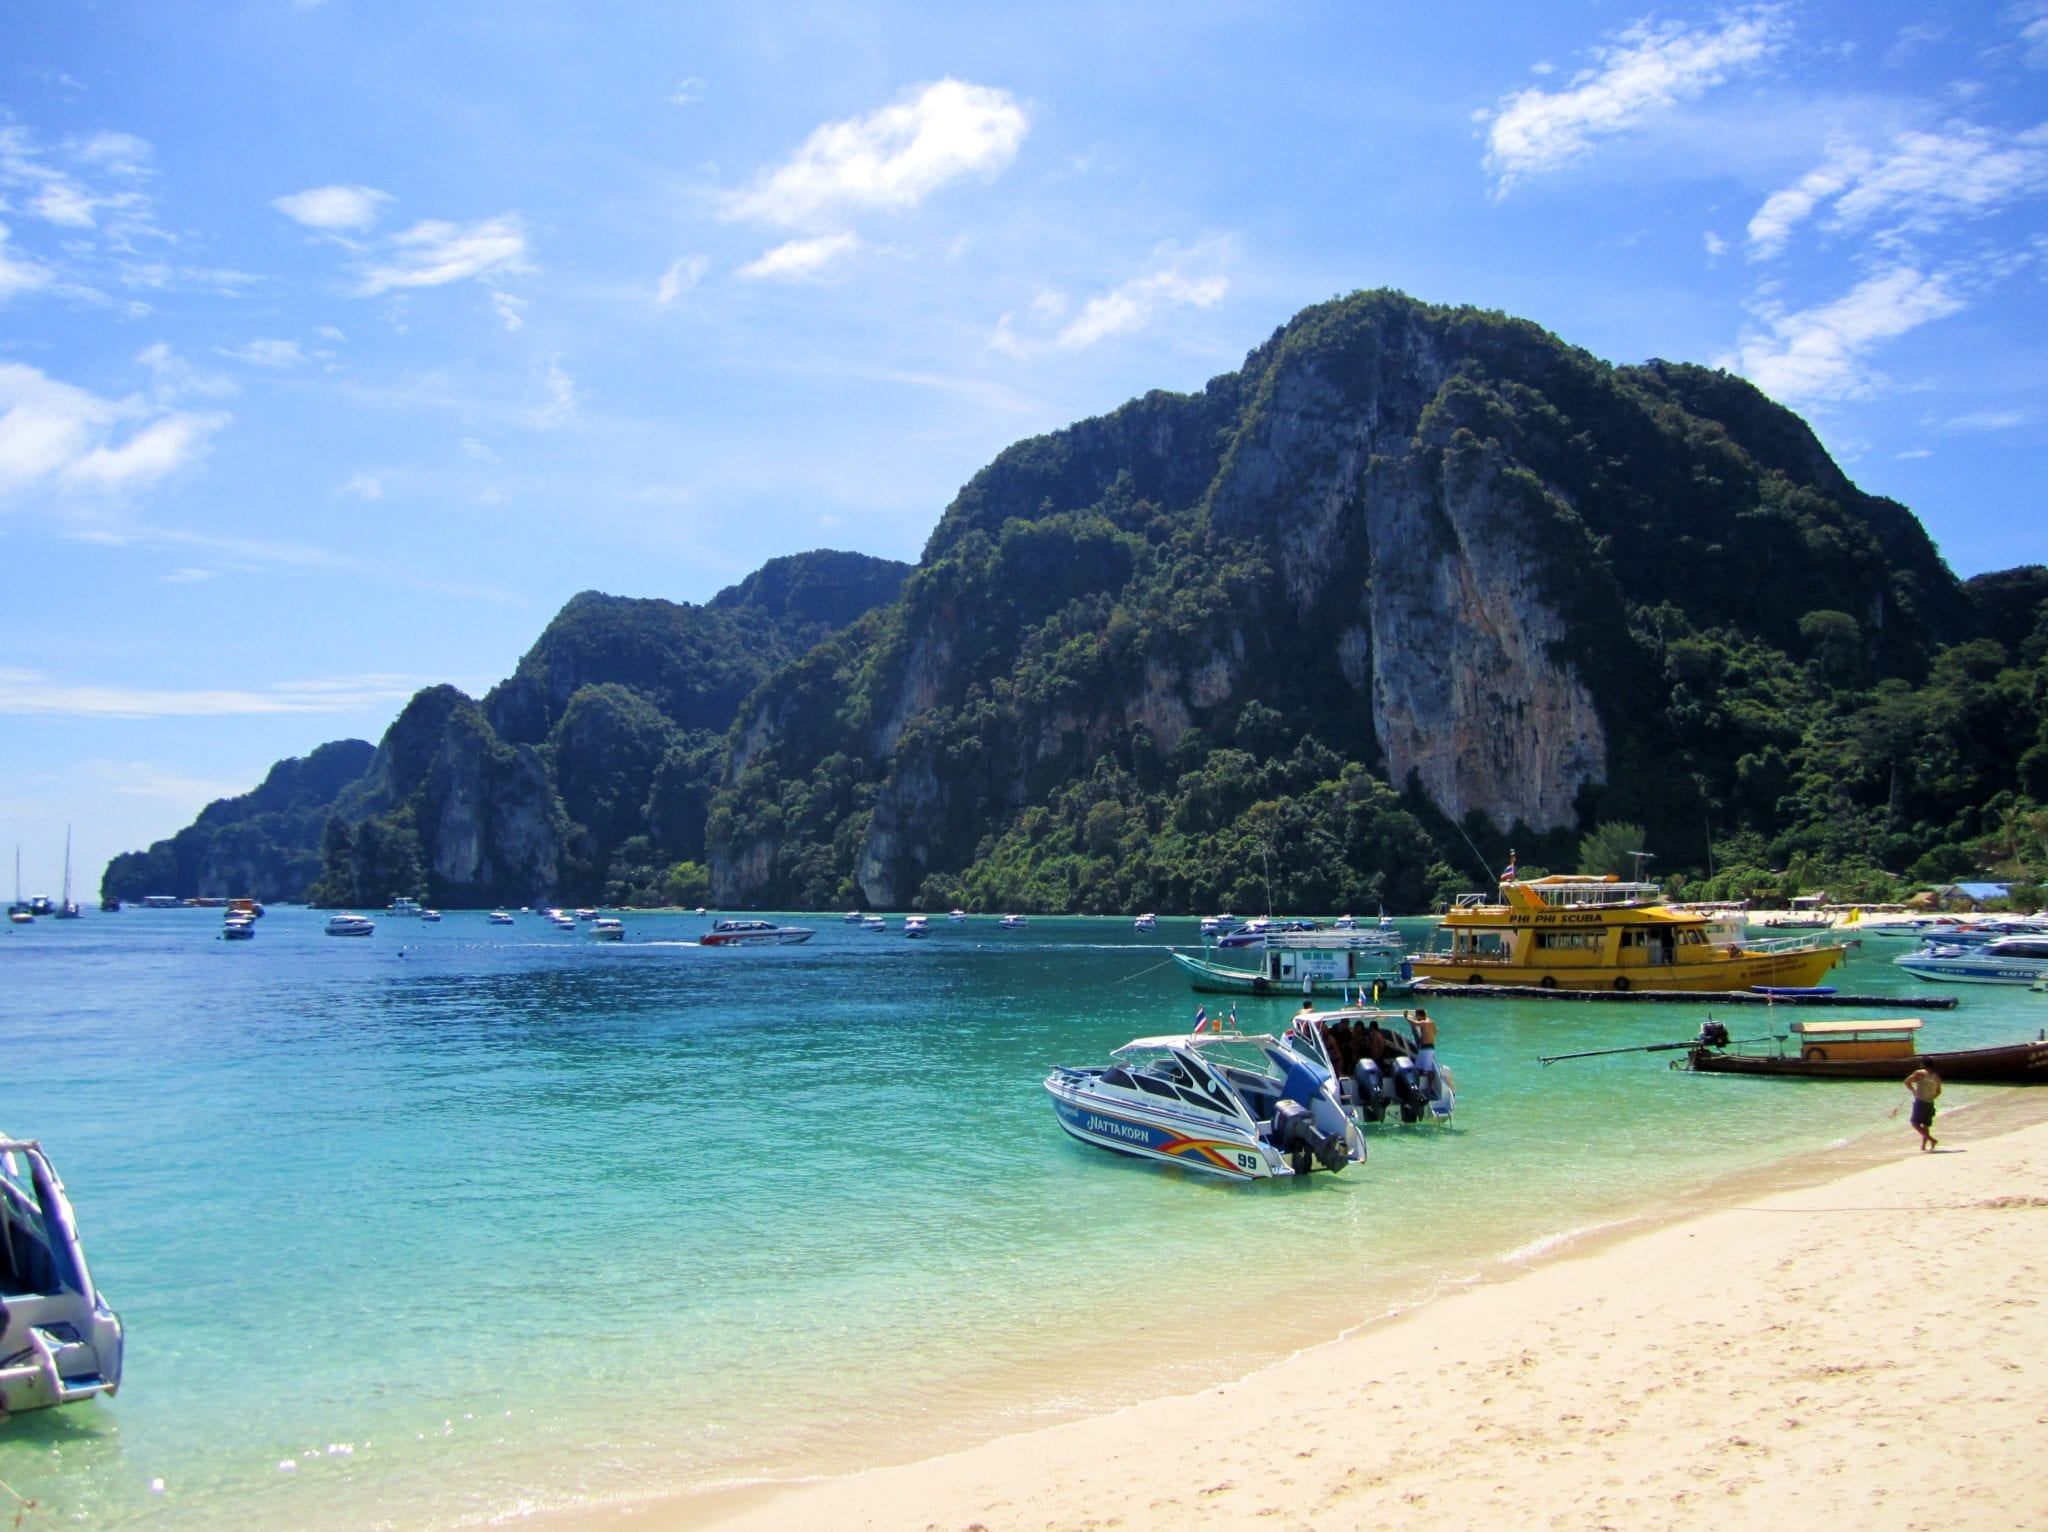 Koh Phi Phi Is Very Beautiful And May Kill You - Adventurous